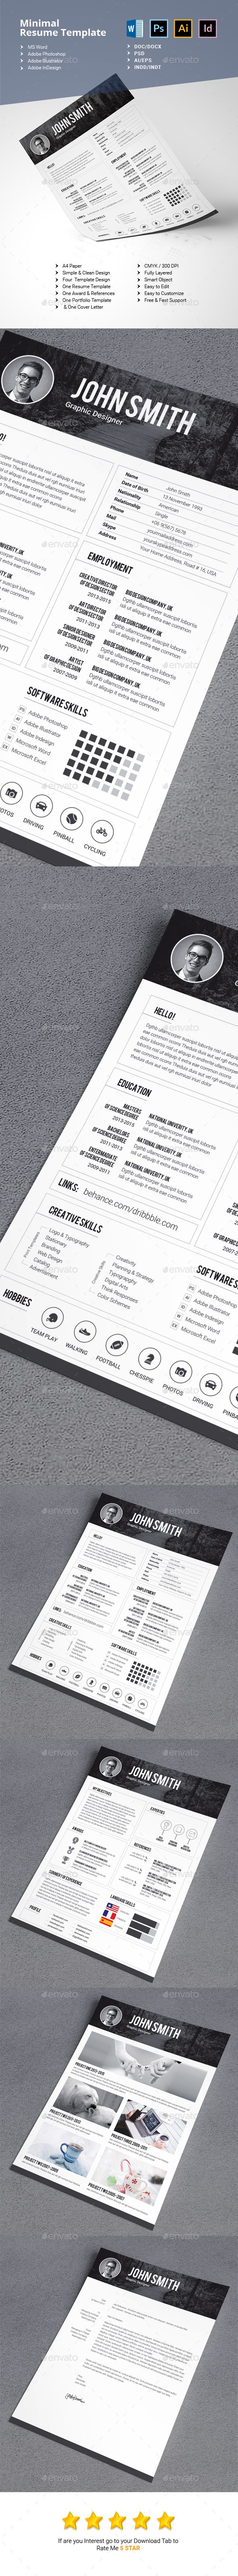 Minimalist Resume Template by WhiteGraphic 31 best